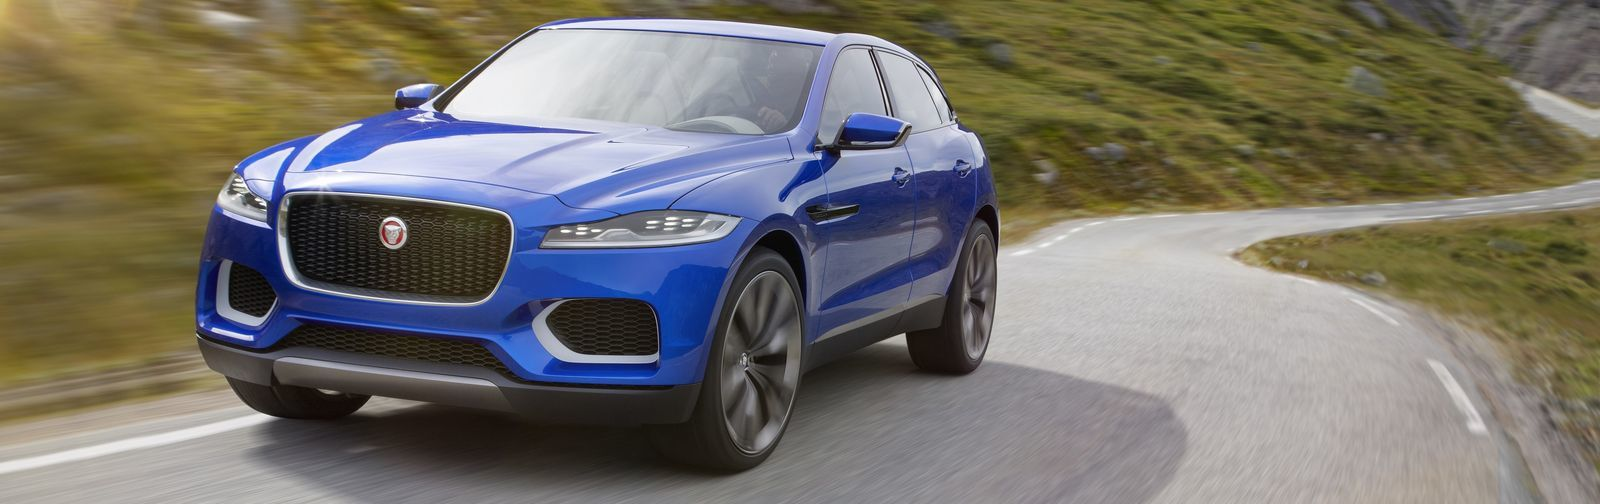 jaguar f pace sizes and dimensions guide carwow. Black Bedroom Furniture Sets. Home Design Ideas